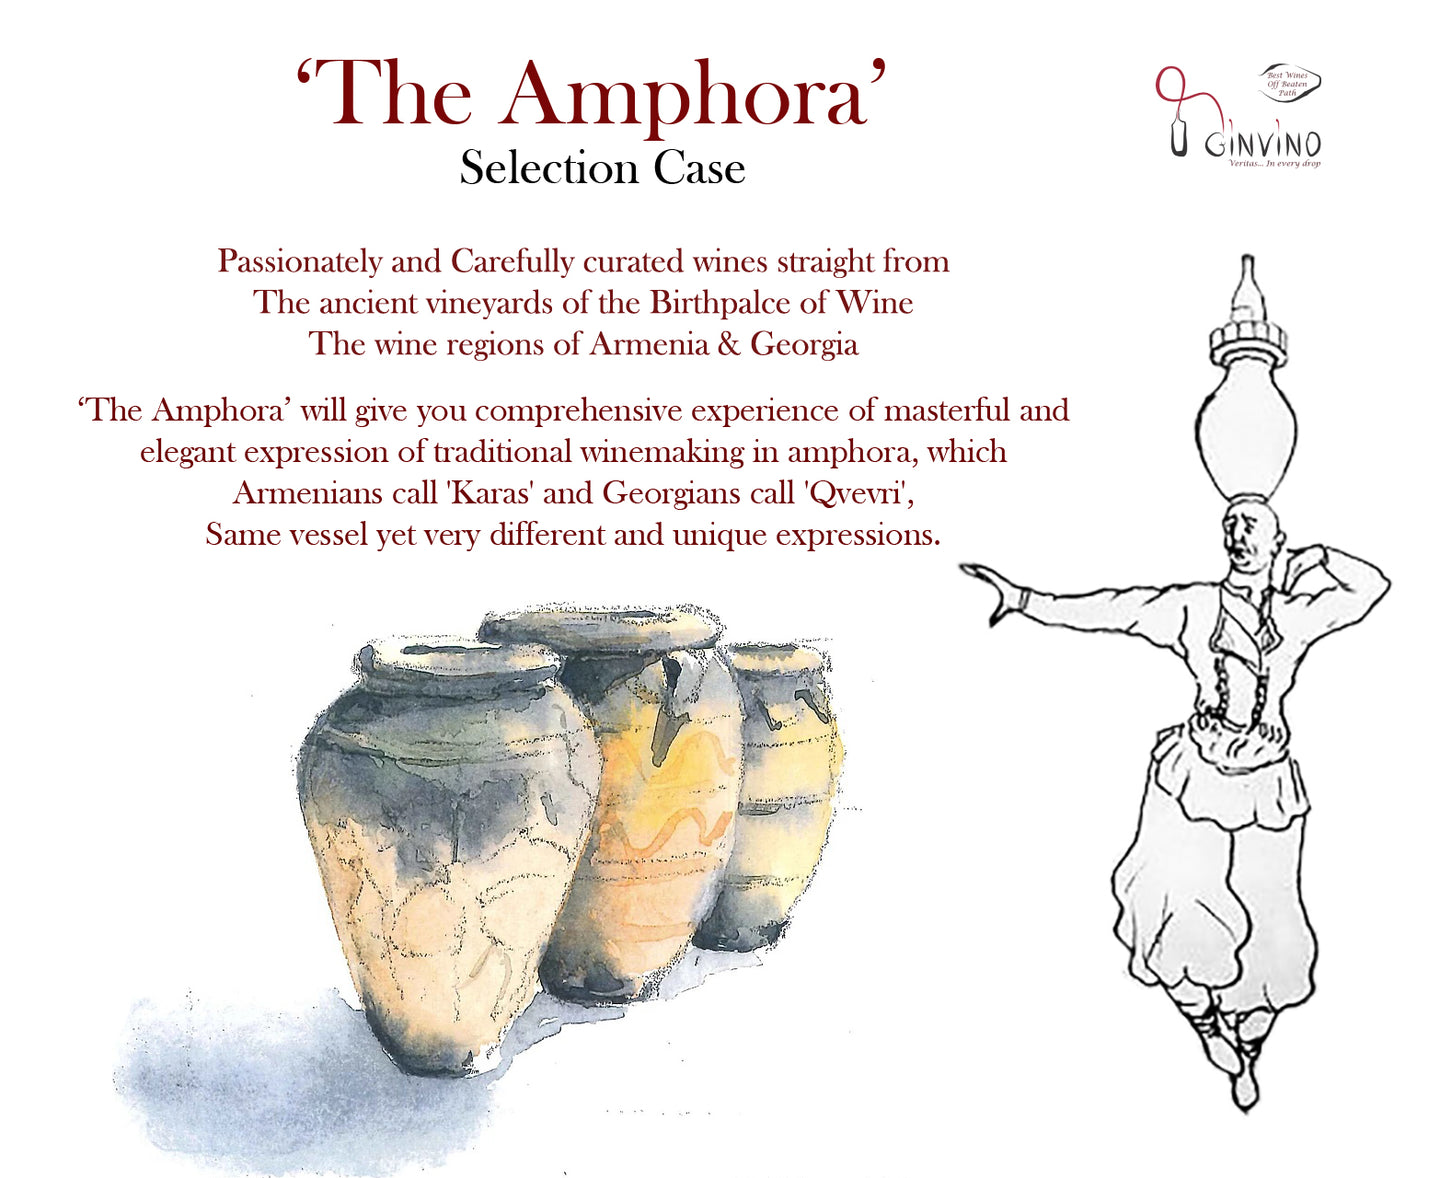 'The Amphora' Case